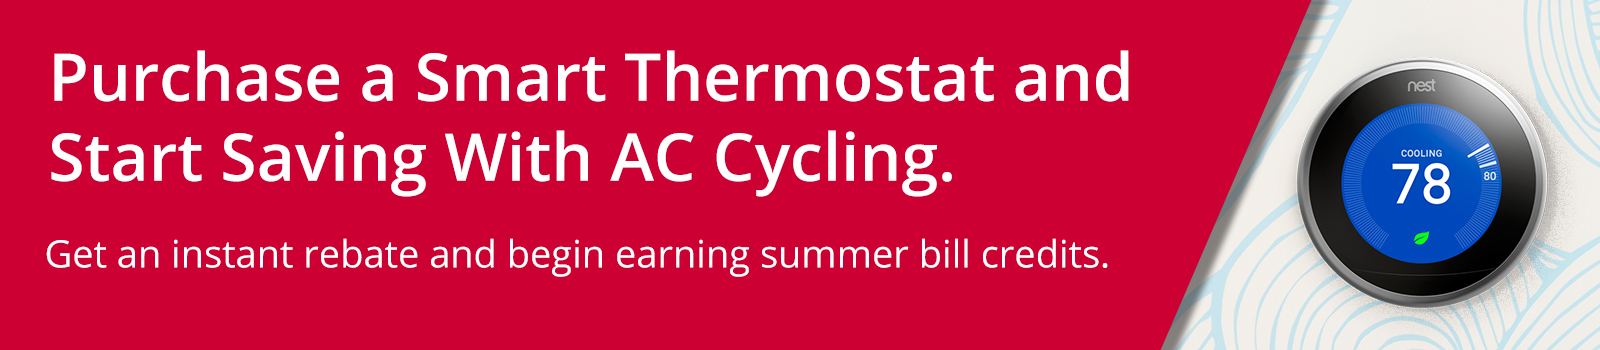 Purchase a Smart Thermostat and Start saving With AC Cylcing. Claim an instant rebate and bill credit from ComEd.